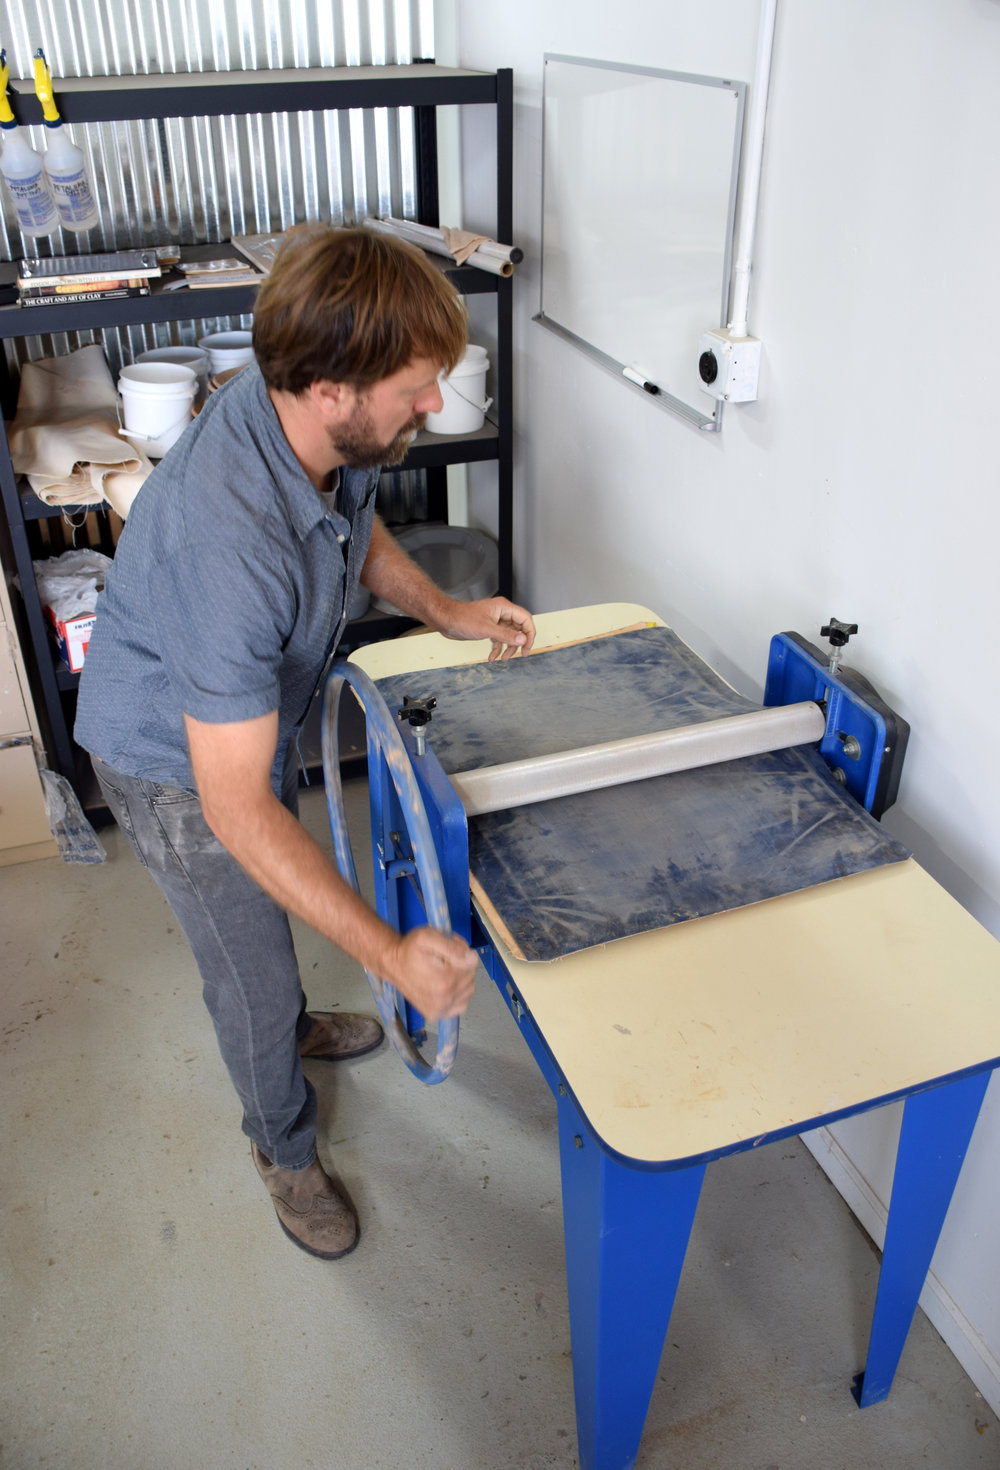 Using the slab roller in the community studio